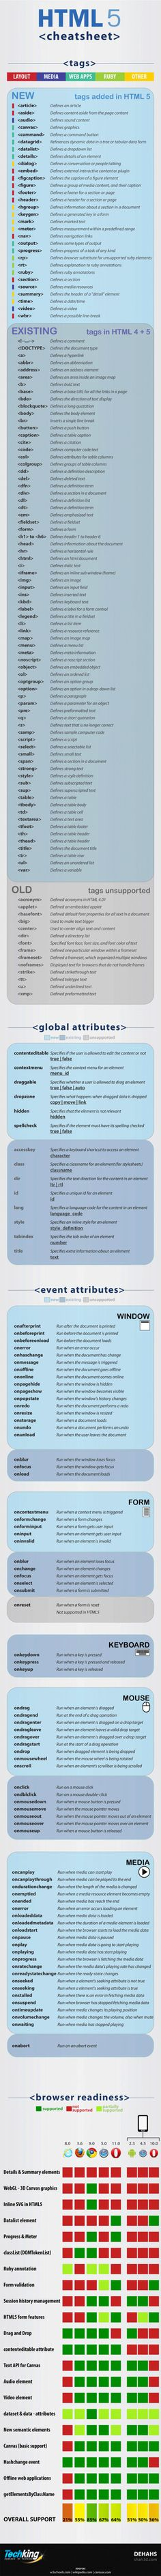 HTML 5 Cheat Sheet - UltraLinx